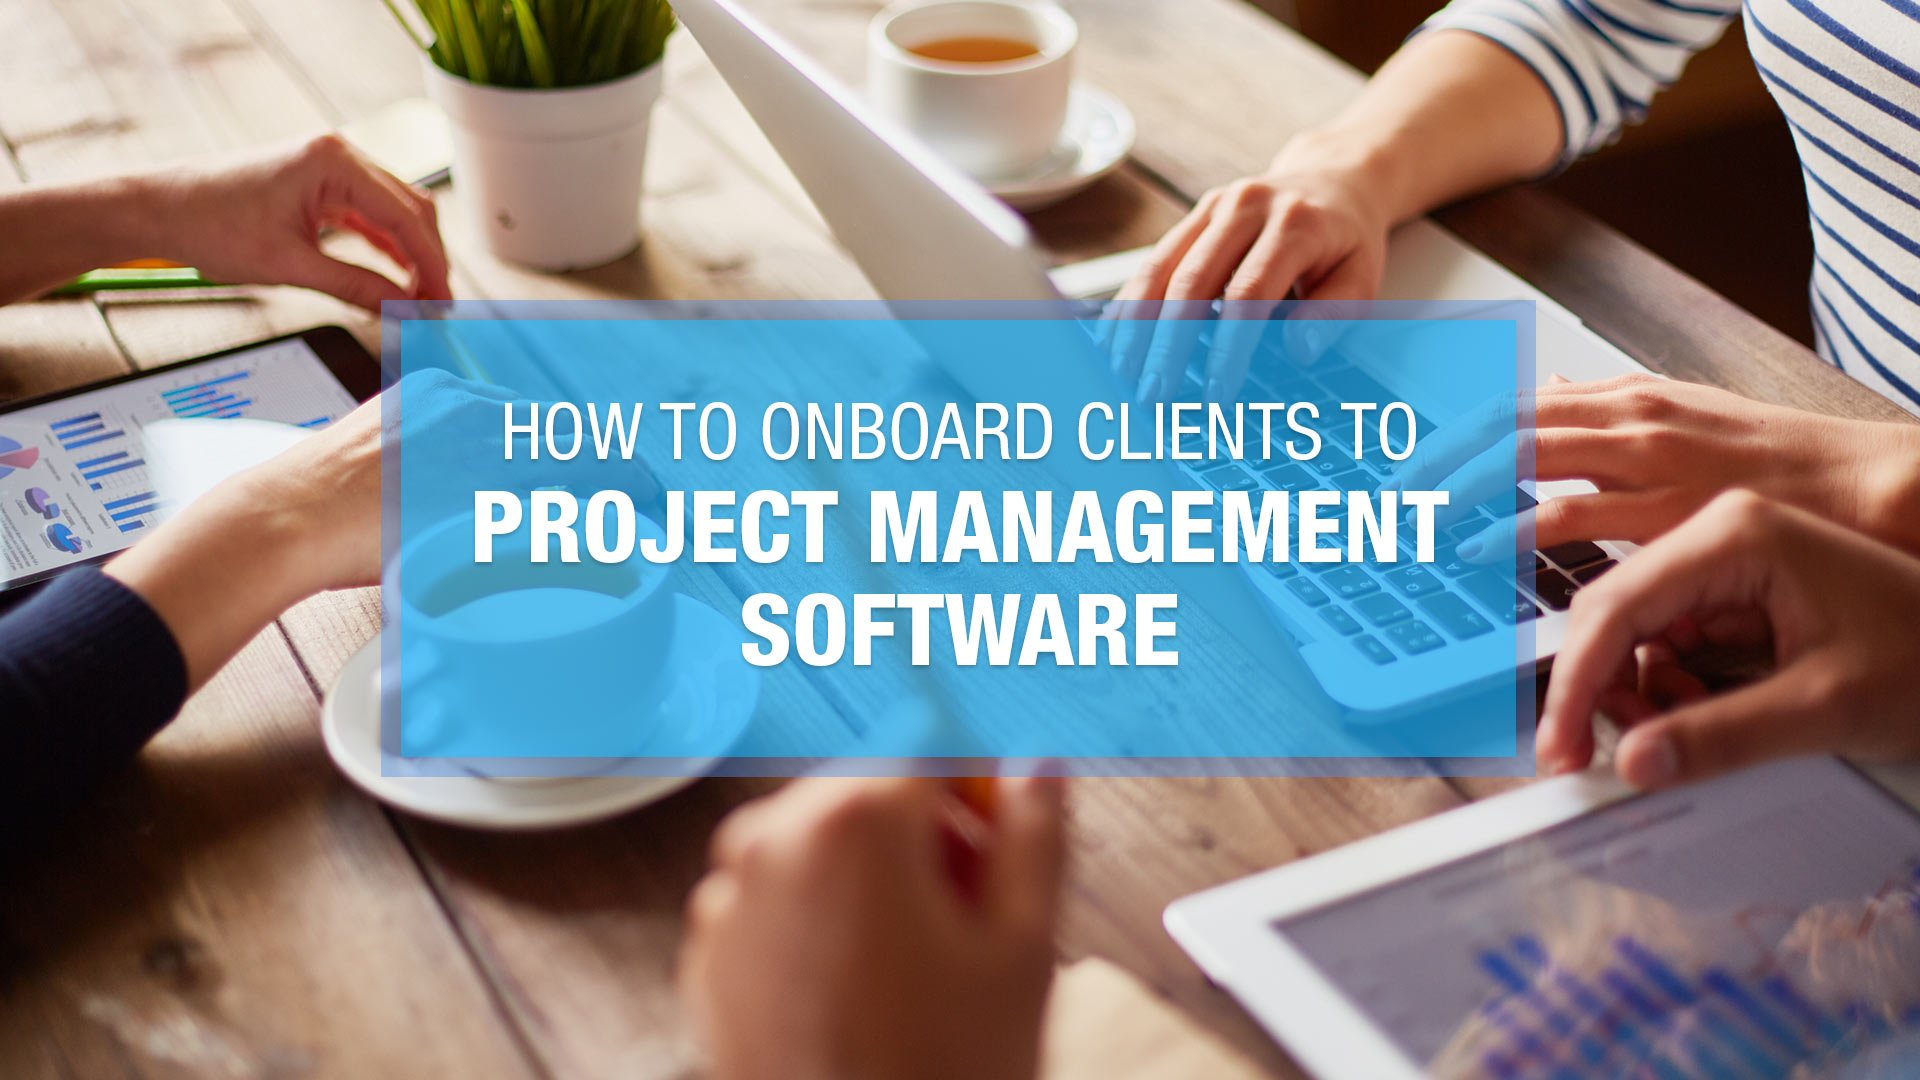 How to Onboard Clients to Project Management Software | Teamwork.com High Performance Blog